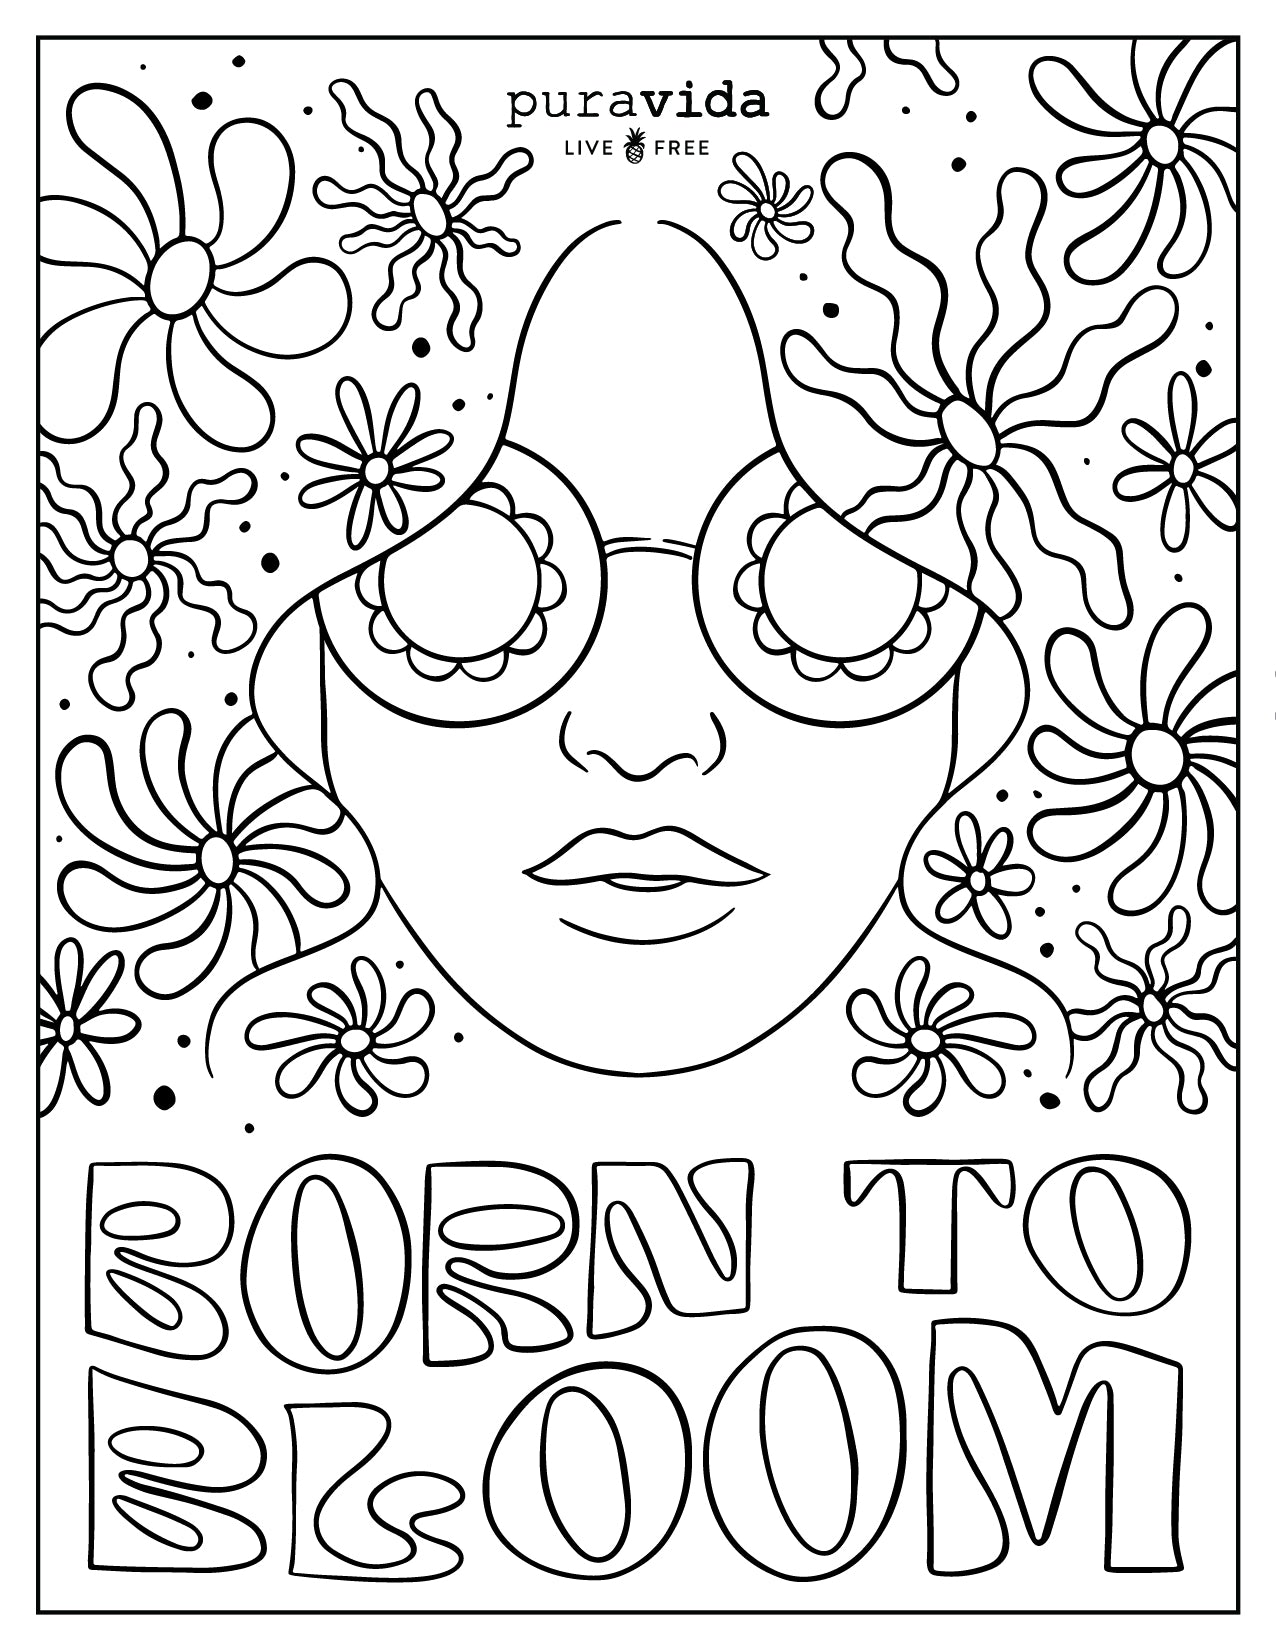 PV Birthday Coloring Sheets - Born to Bloom